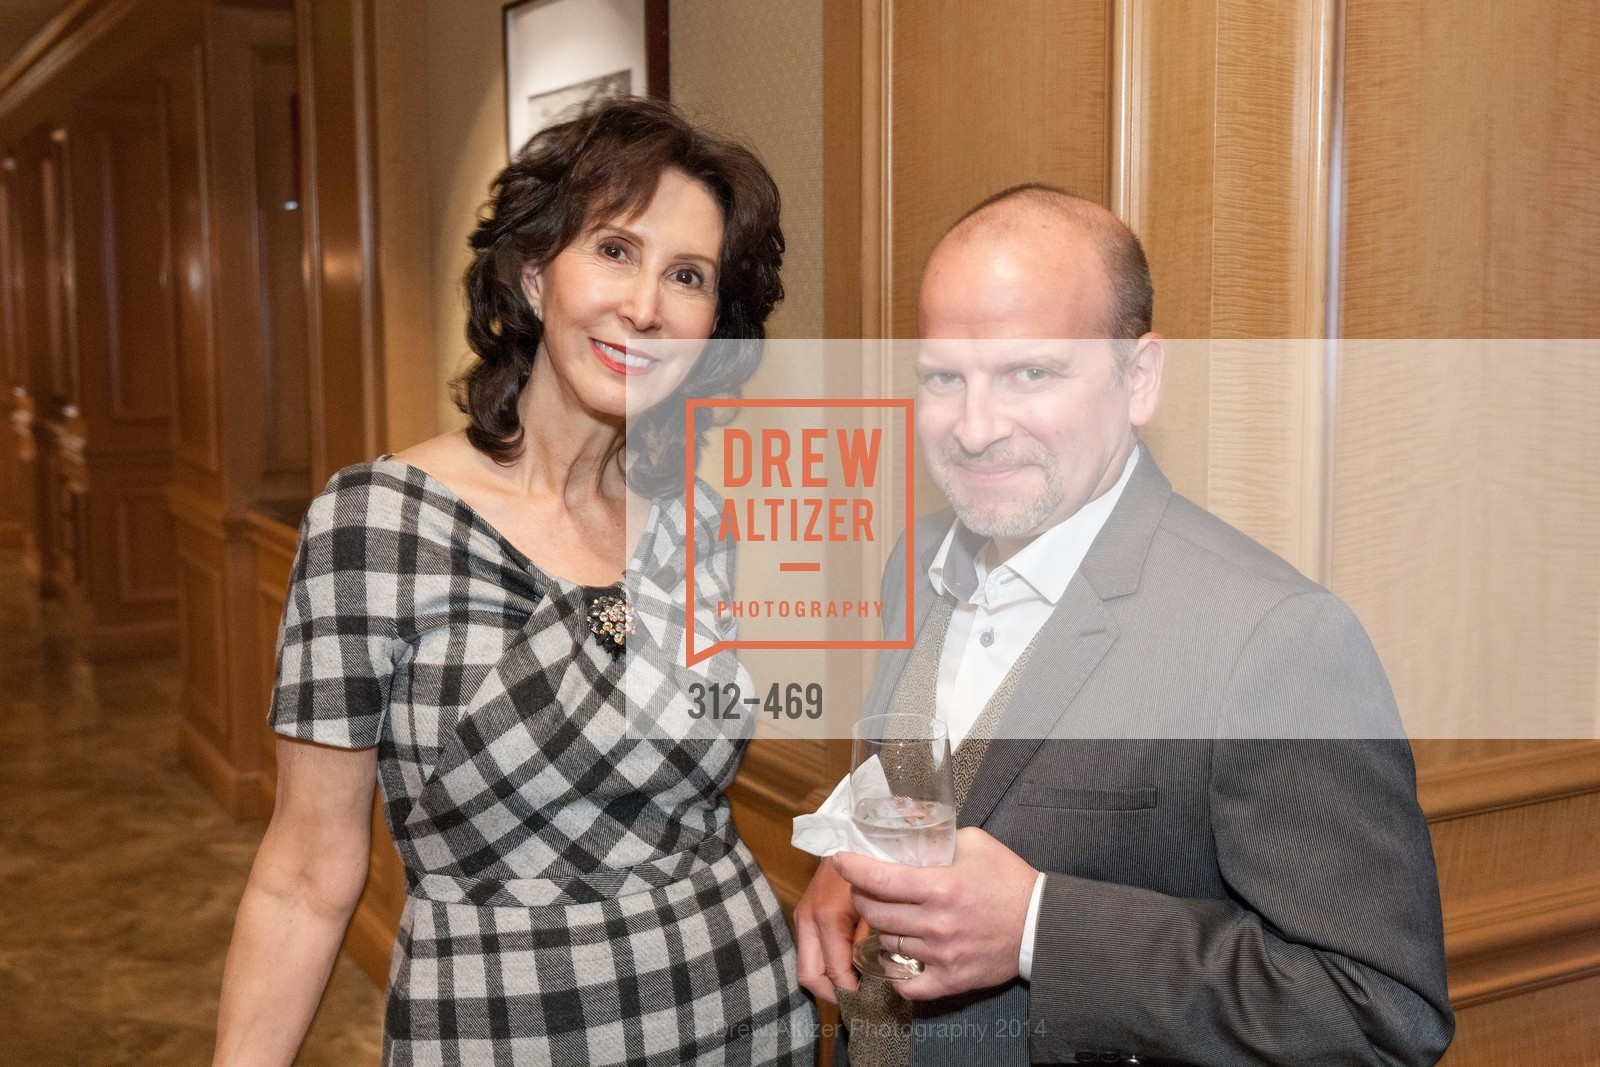 """Extras, FAIRMONT LUNCHEON for CNBC """"Secret Lives of the Super Rich."""", January 21st, 2014, Photo,Drew Altizer, Drew Altizer Photography, full-service agency, private events, San Francisco photographer, photographer california"""